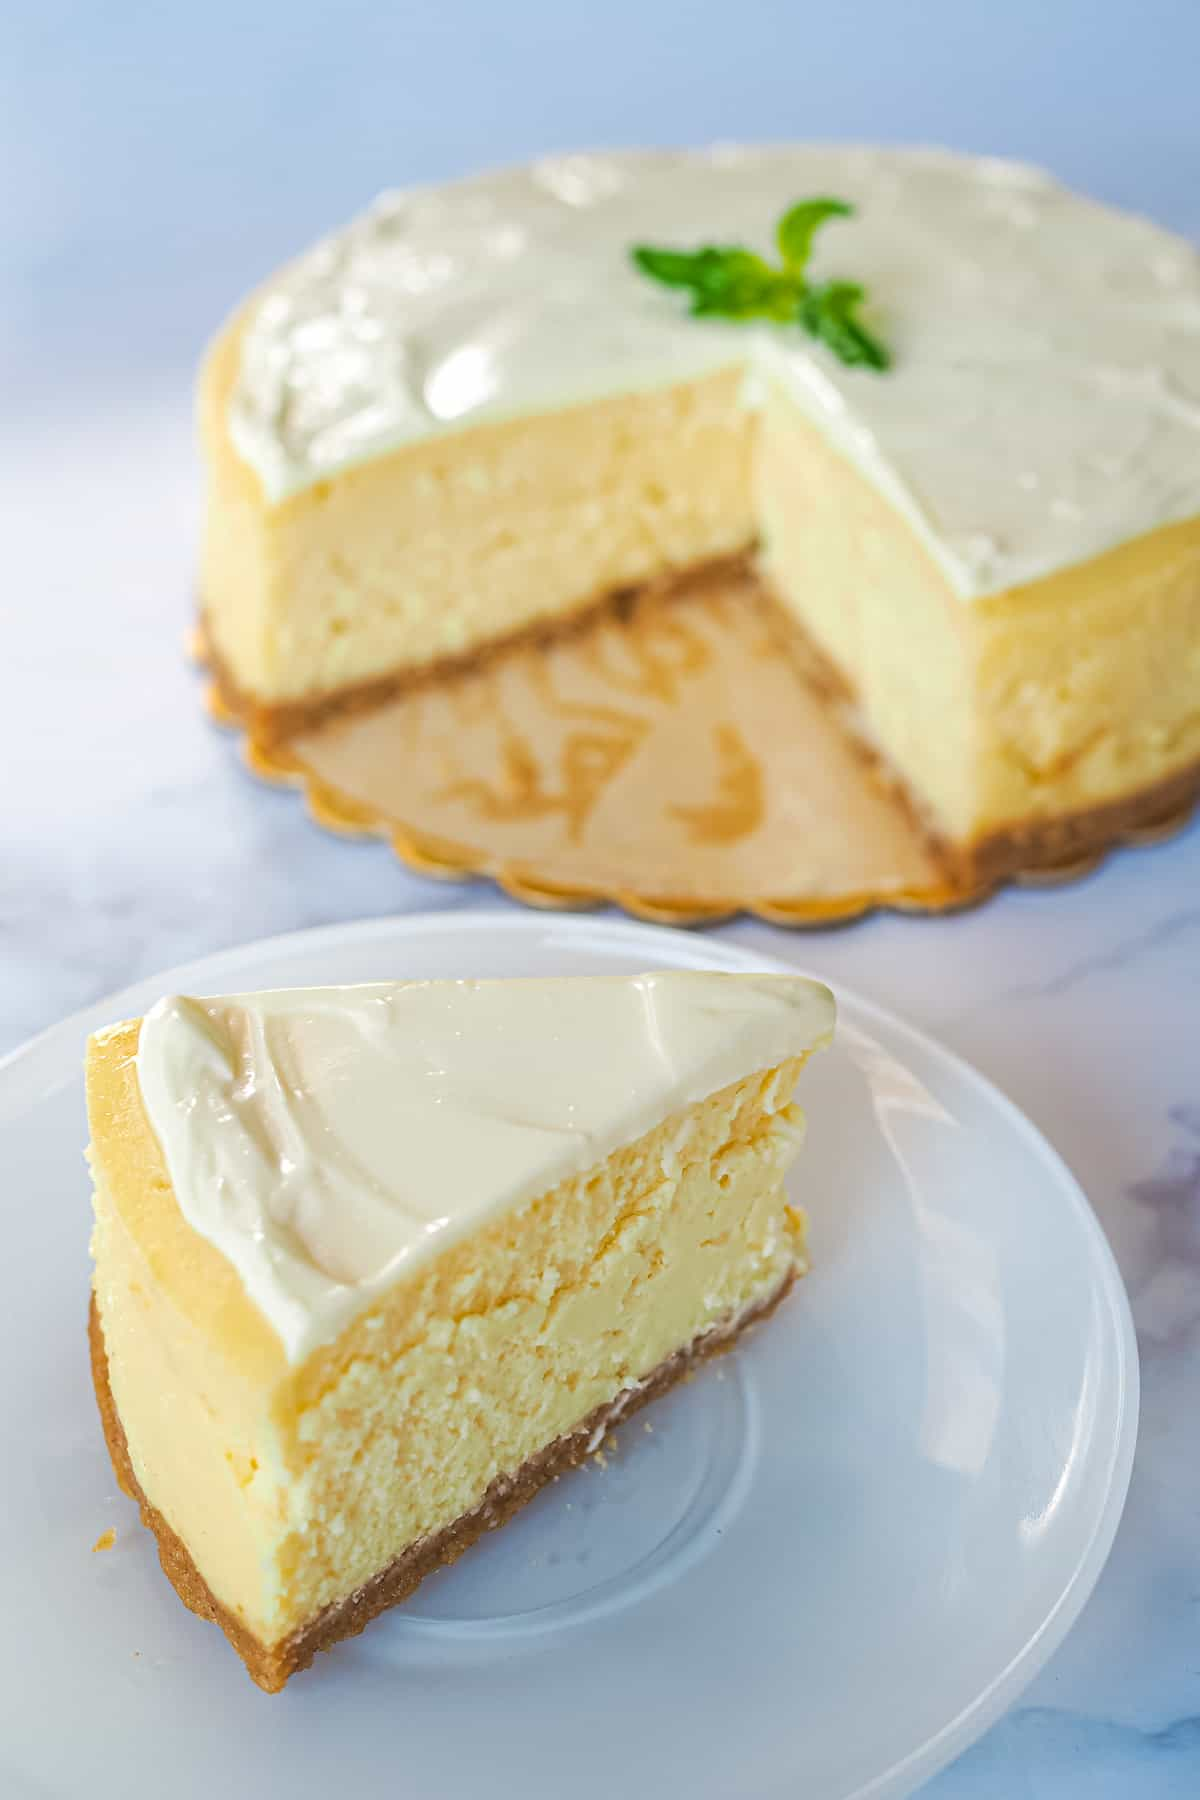 A slice of New York cheesecake with sour cream topping